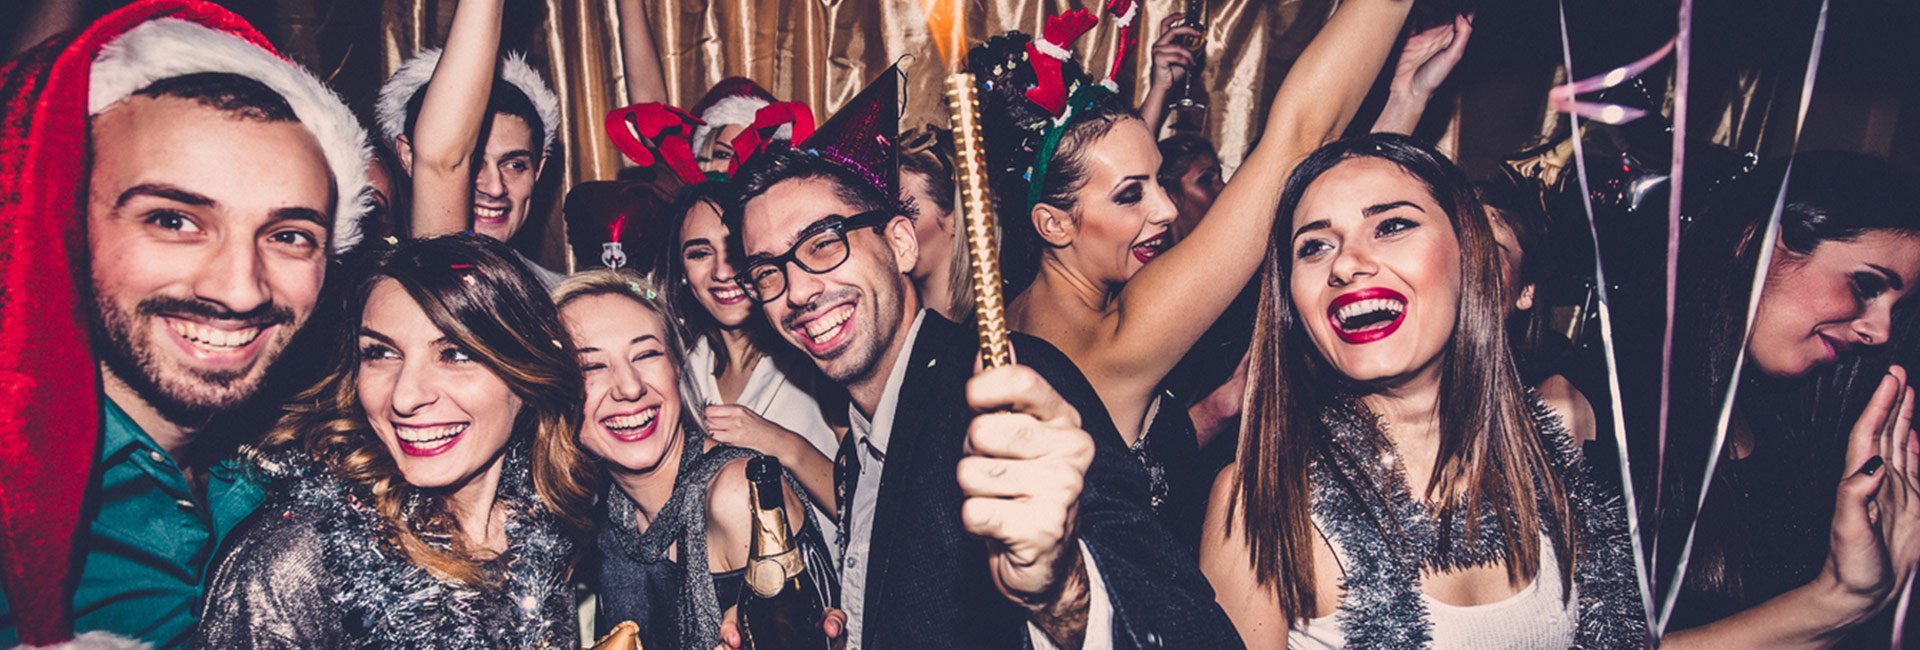 the christmas party dos and don'ts